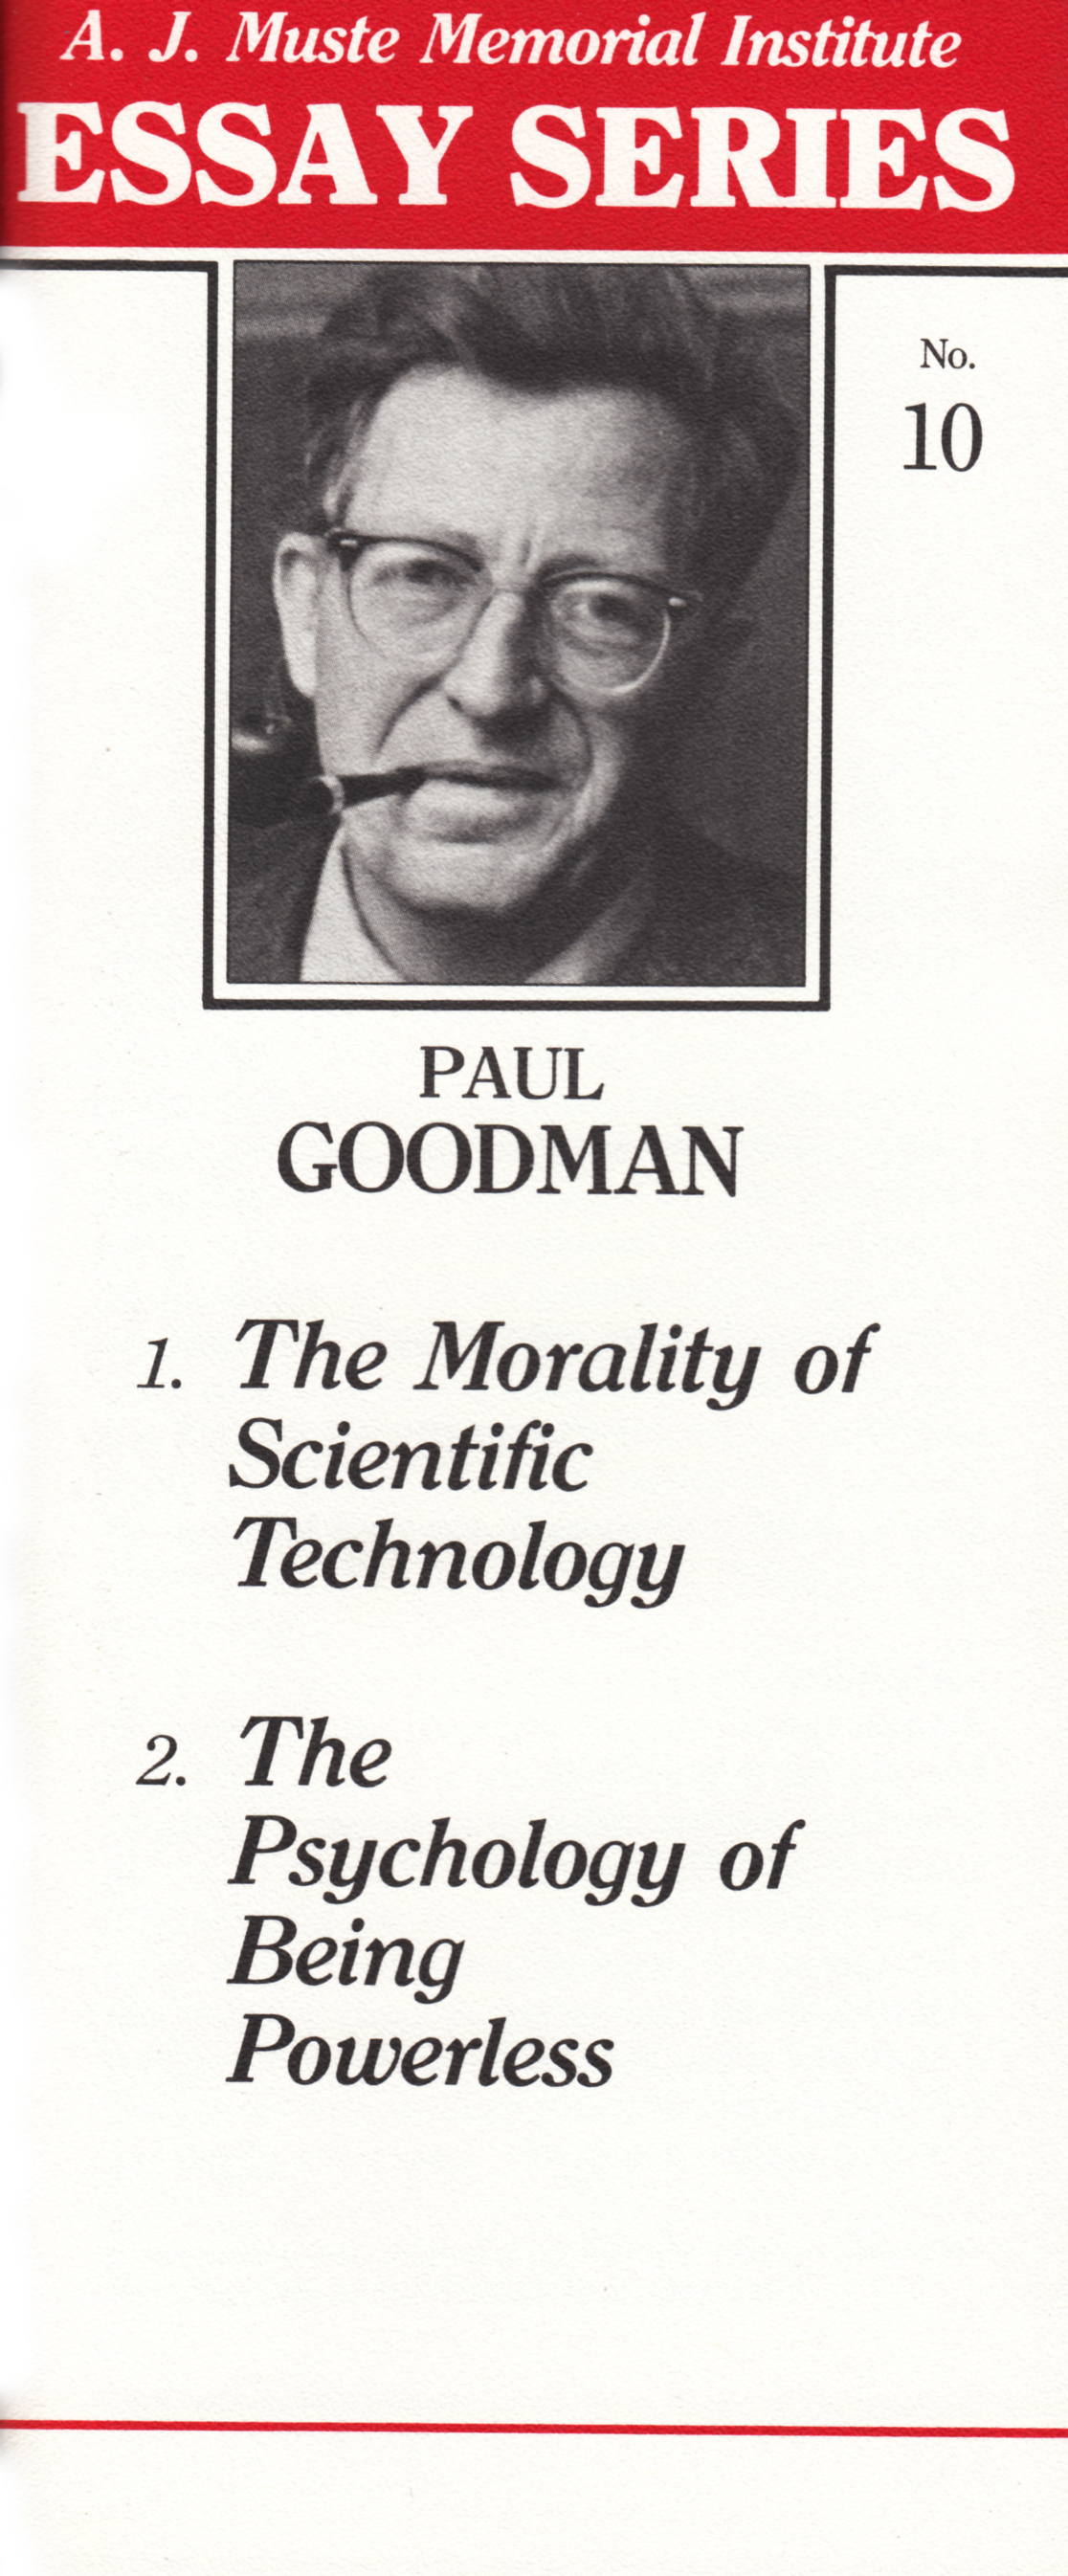 """paul goodman utopian essays The paul goodman reader (review)  we have such essays as the """"preface to utopian essays and prac -  the paul goodman reader speaks to us all."""